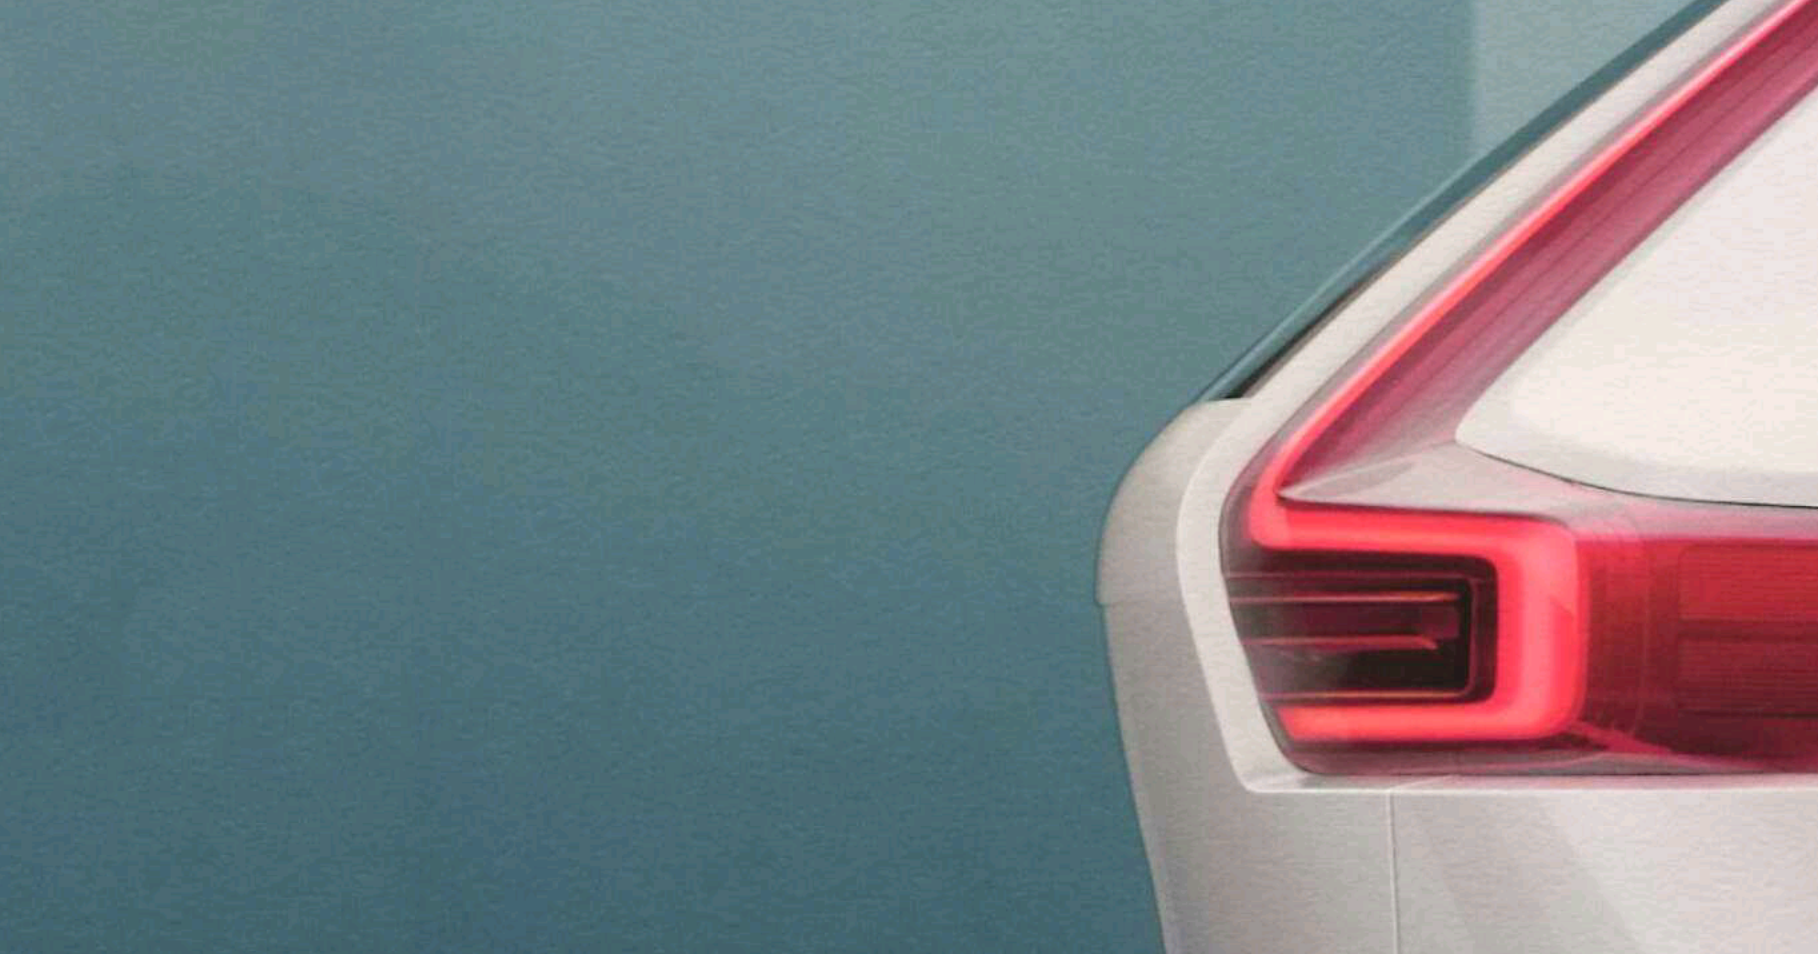 Volvo XC40 concept teased again as a plug-in hybrid